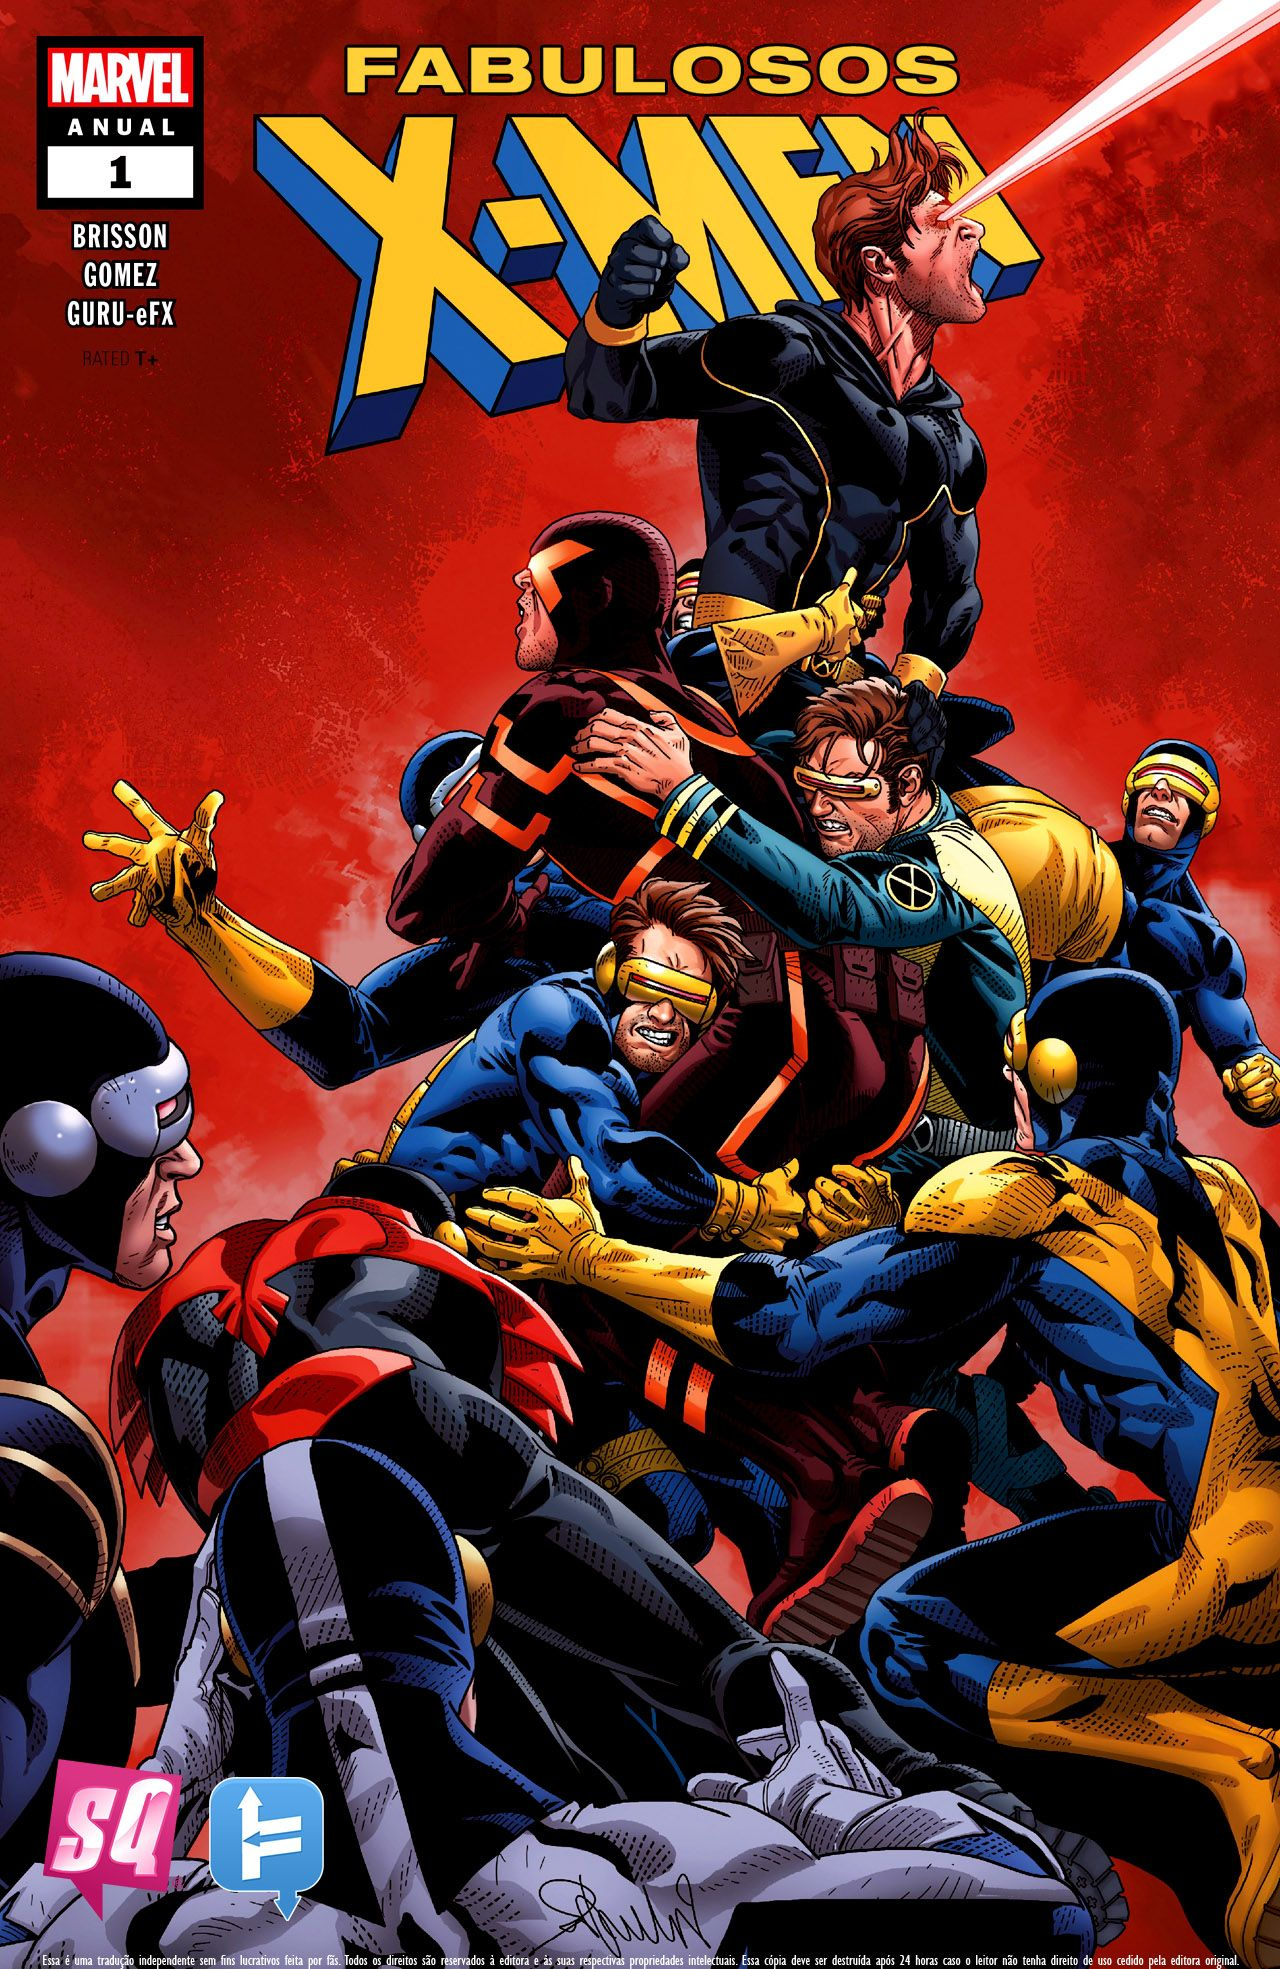 Ler Manga Fabulosos X Men 2018 Capitulo A01 Online In 2020 Comics Marvel X Men